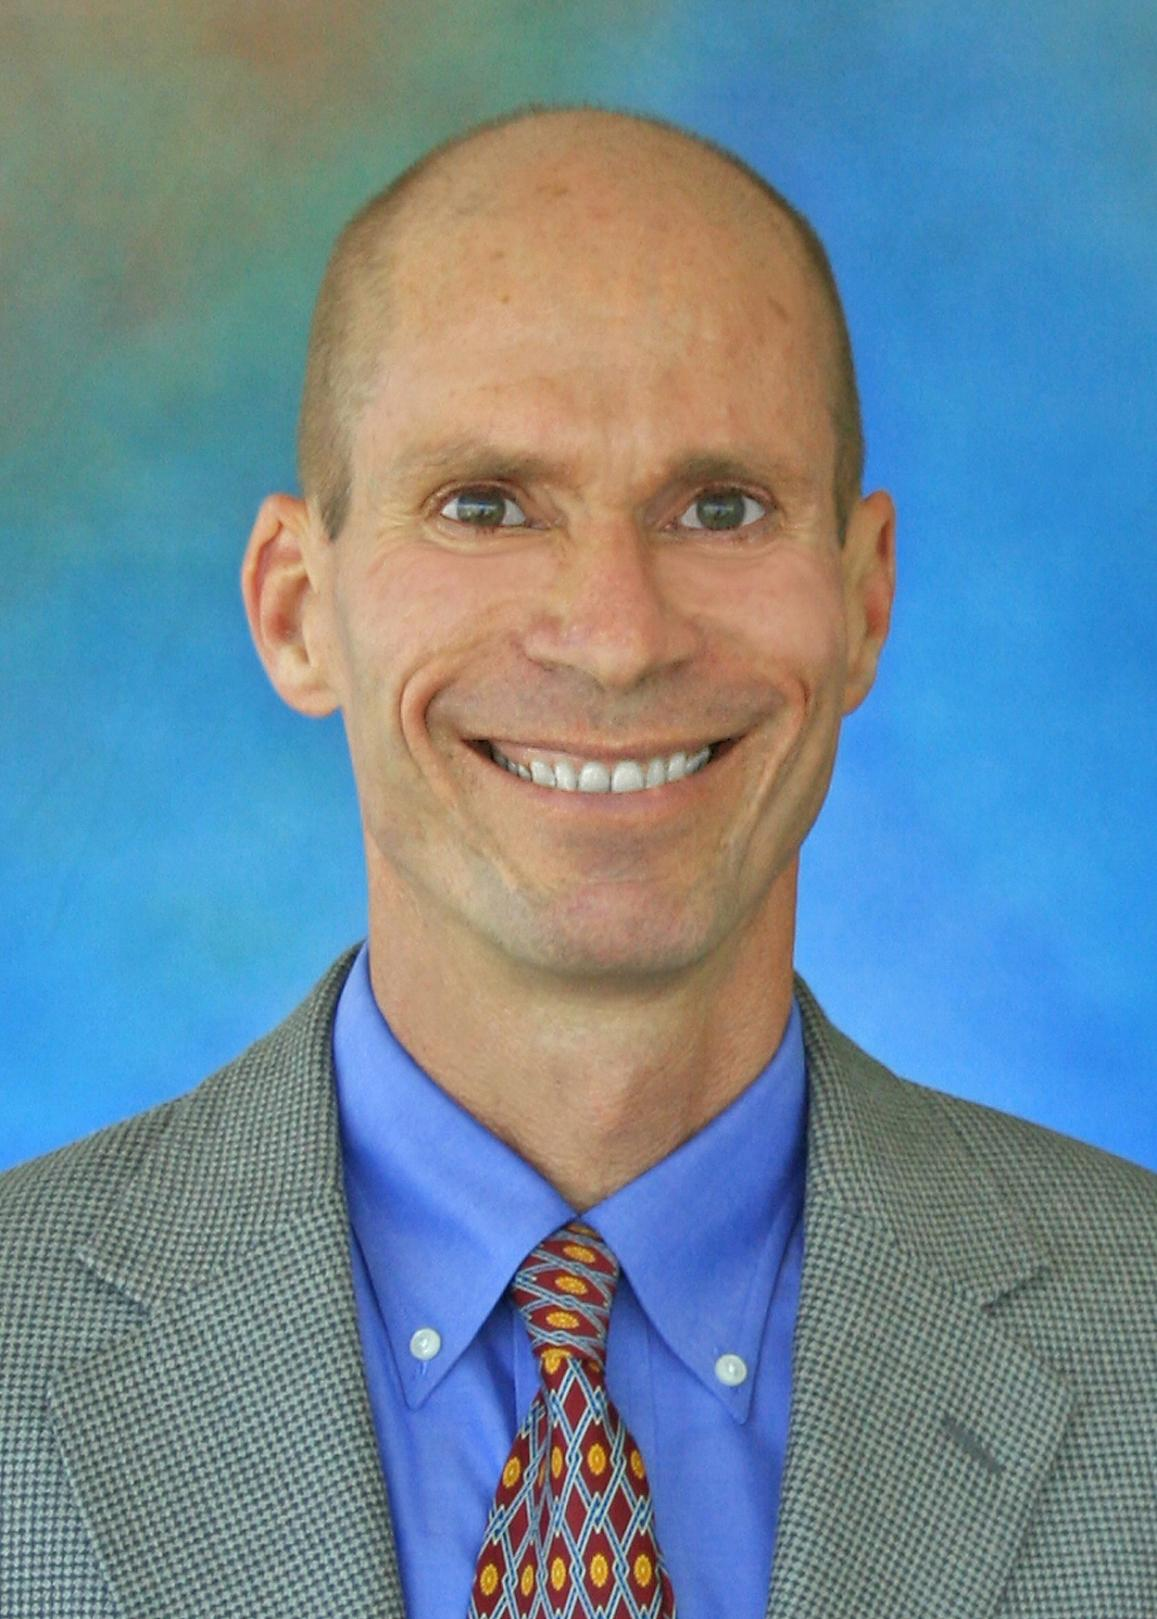 Gregory Simon, M.D., M.P.H.